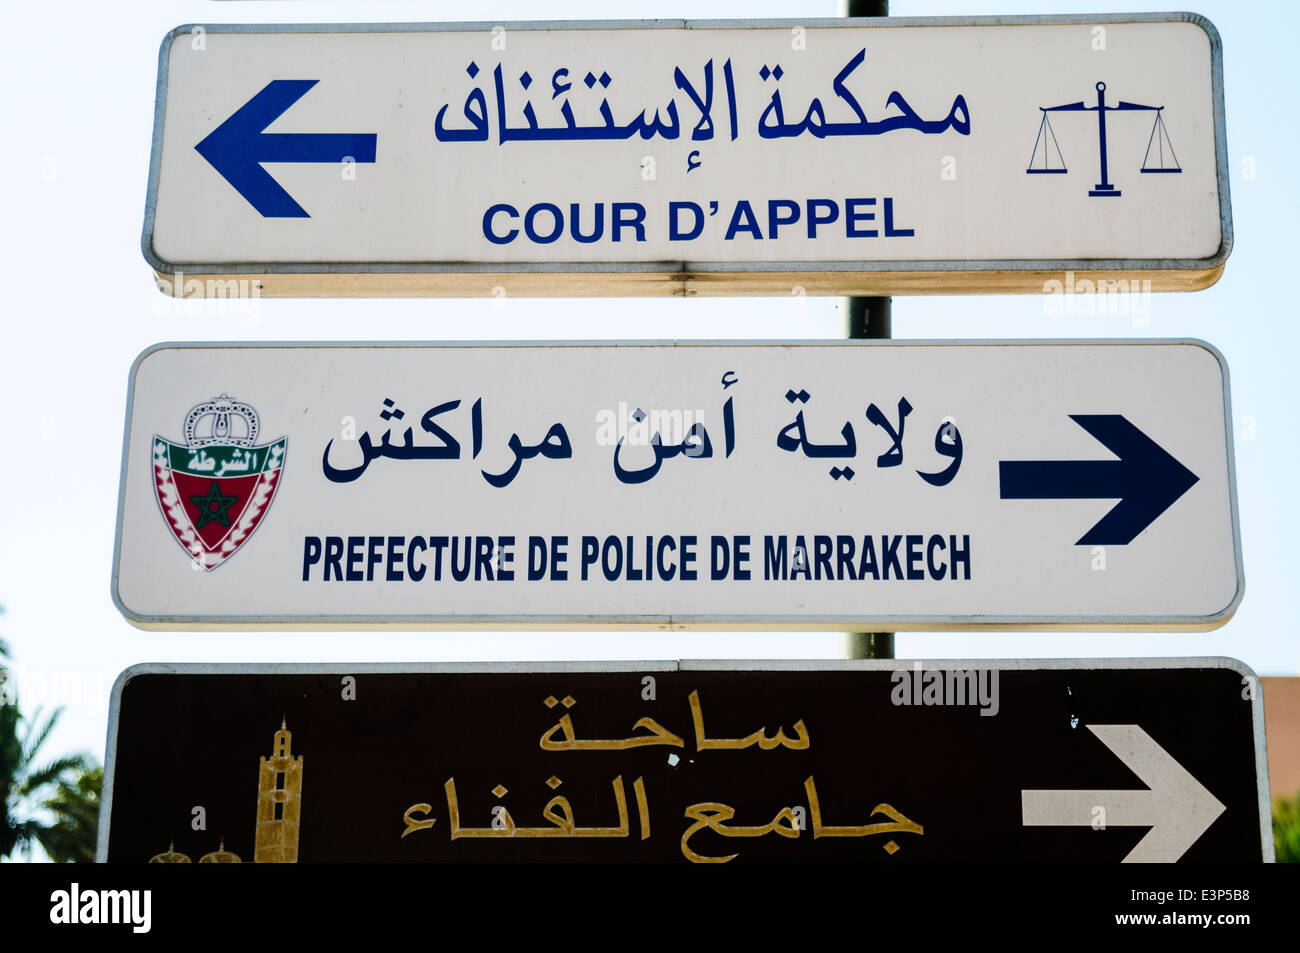 Signs for the Prefecture De Police de Marrakech, police station, and the Cour D'Appel, Marrakech, Morocco Stock Photo